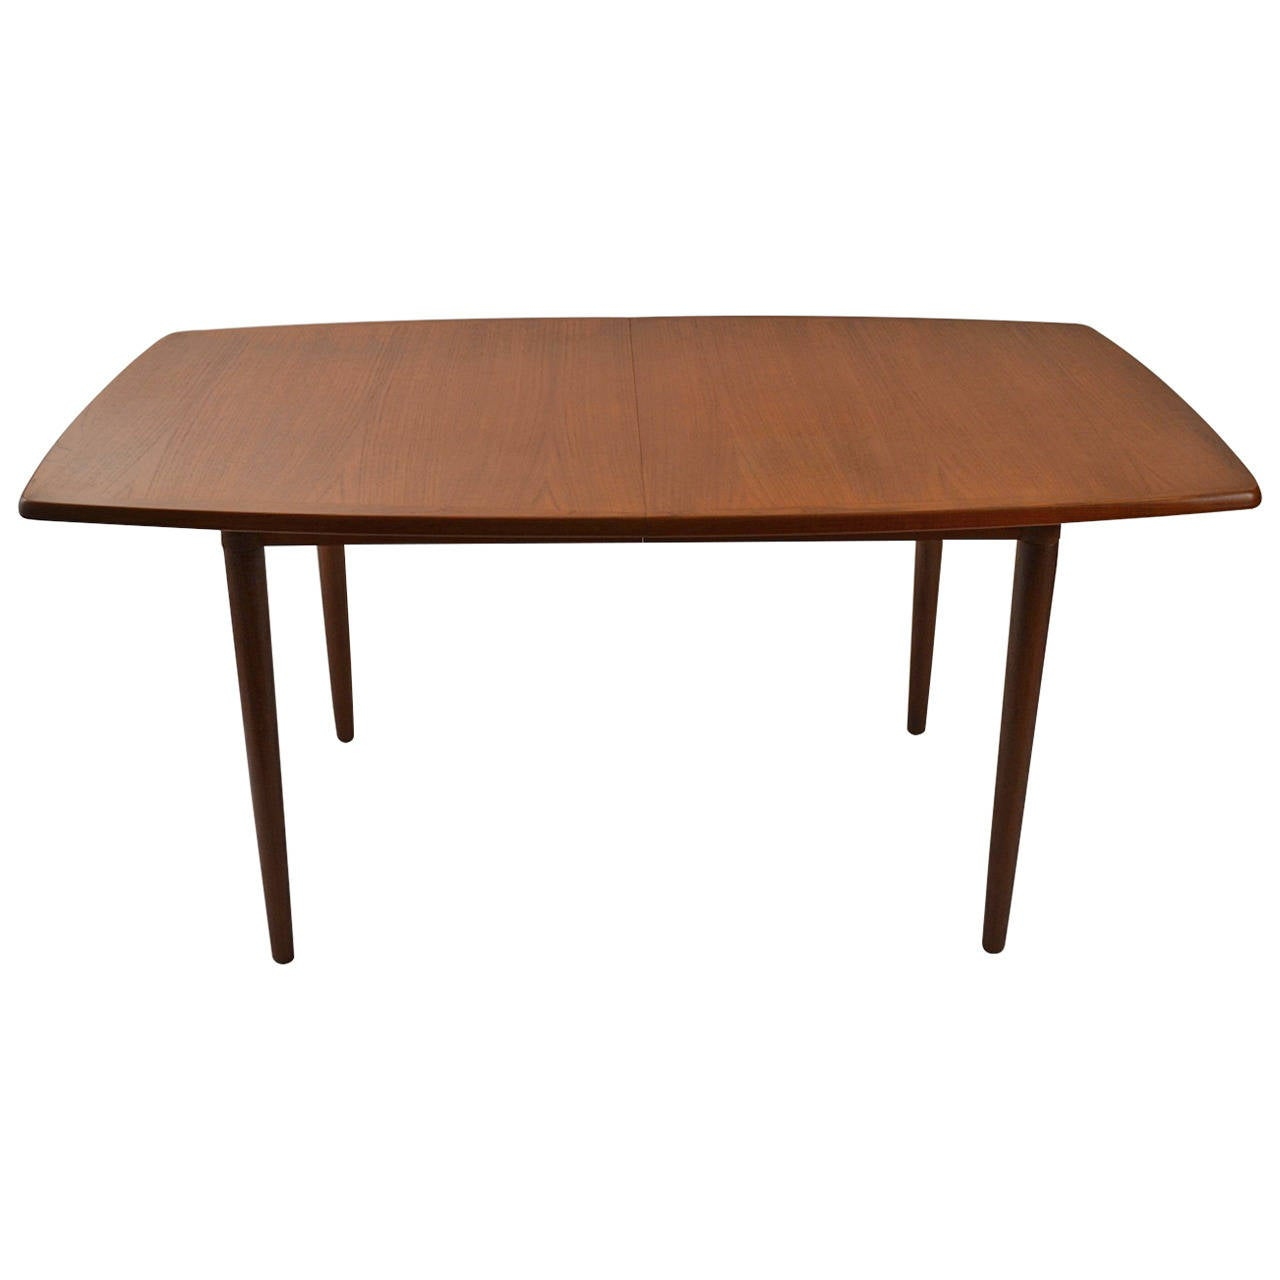 Danish Modern Teak Dining Table With Two Leaves At 1stdibs